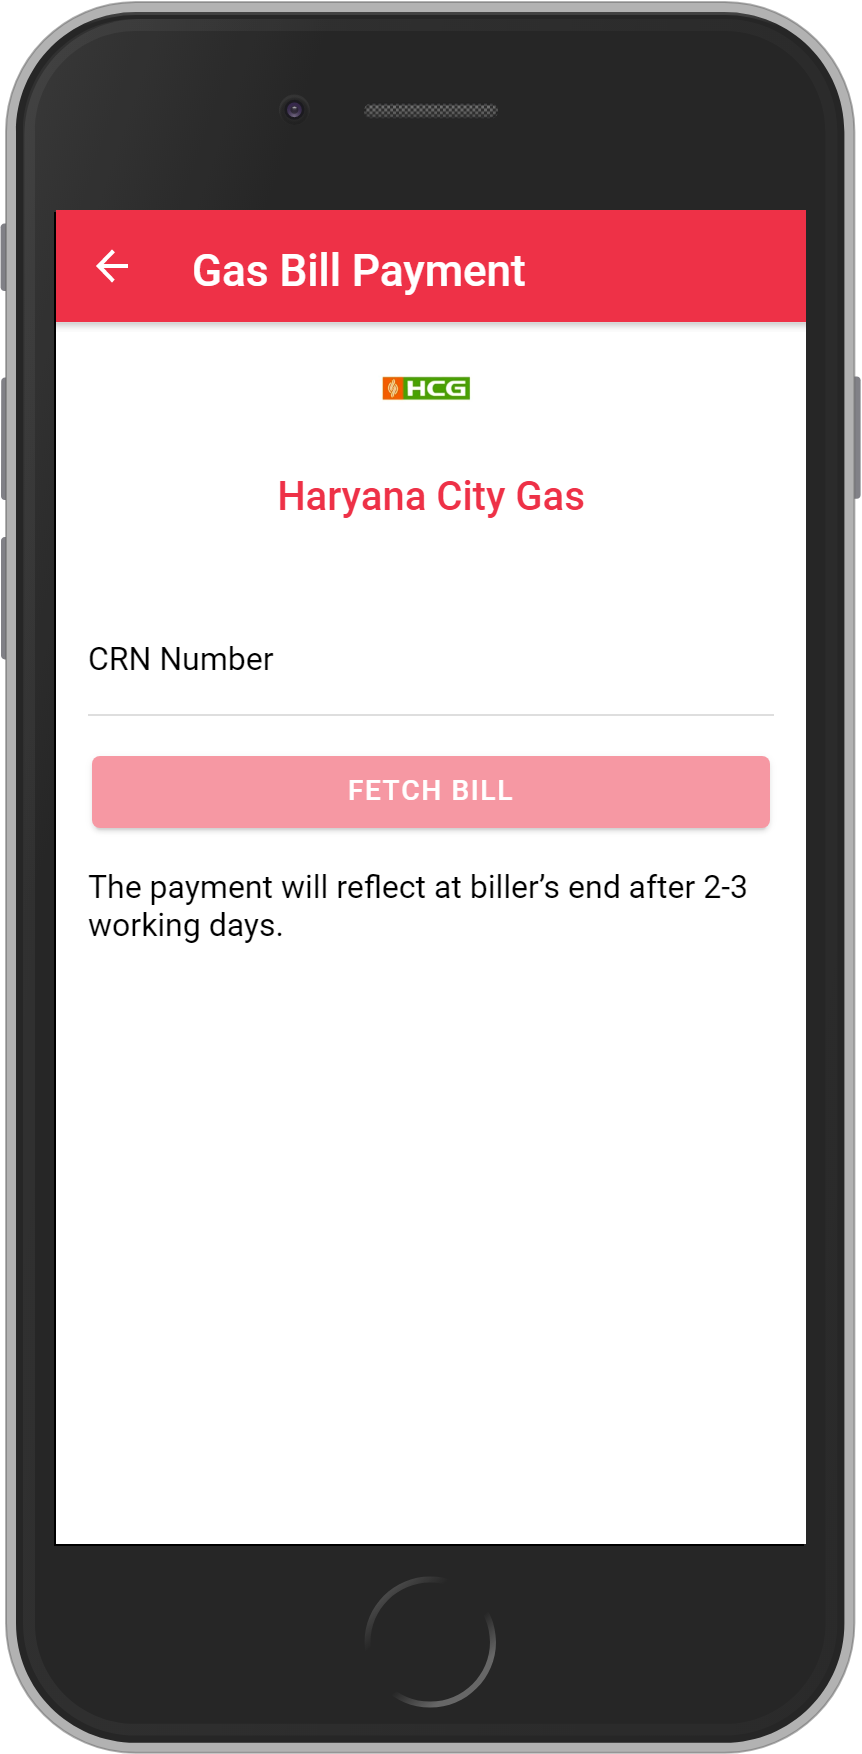 Get UNLIMITED <b>0.1%</b> CASHBACK on Haryana City Gas Bill Payment.